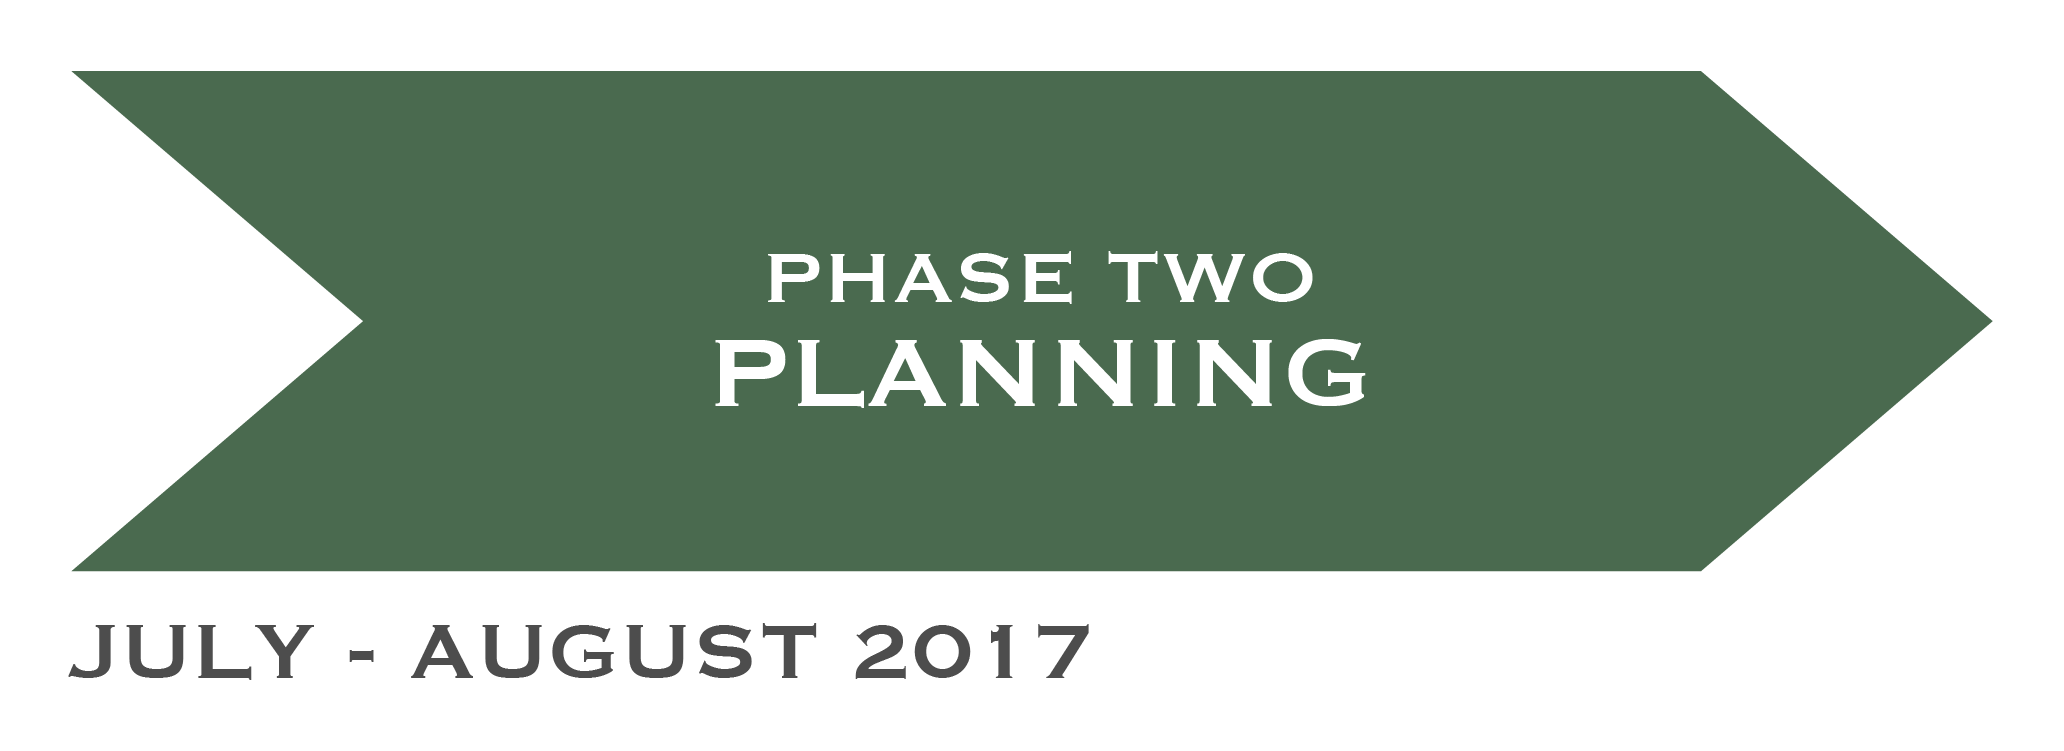 Phase Two - Planning - July – August 2017